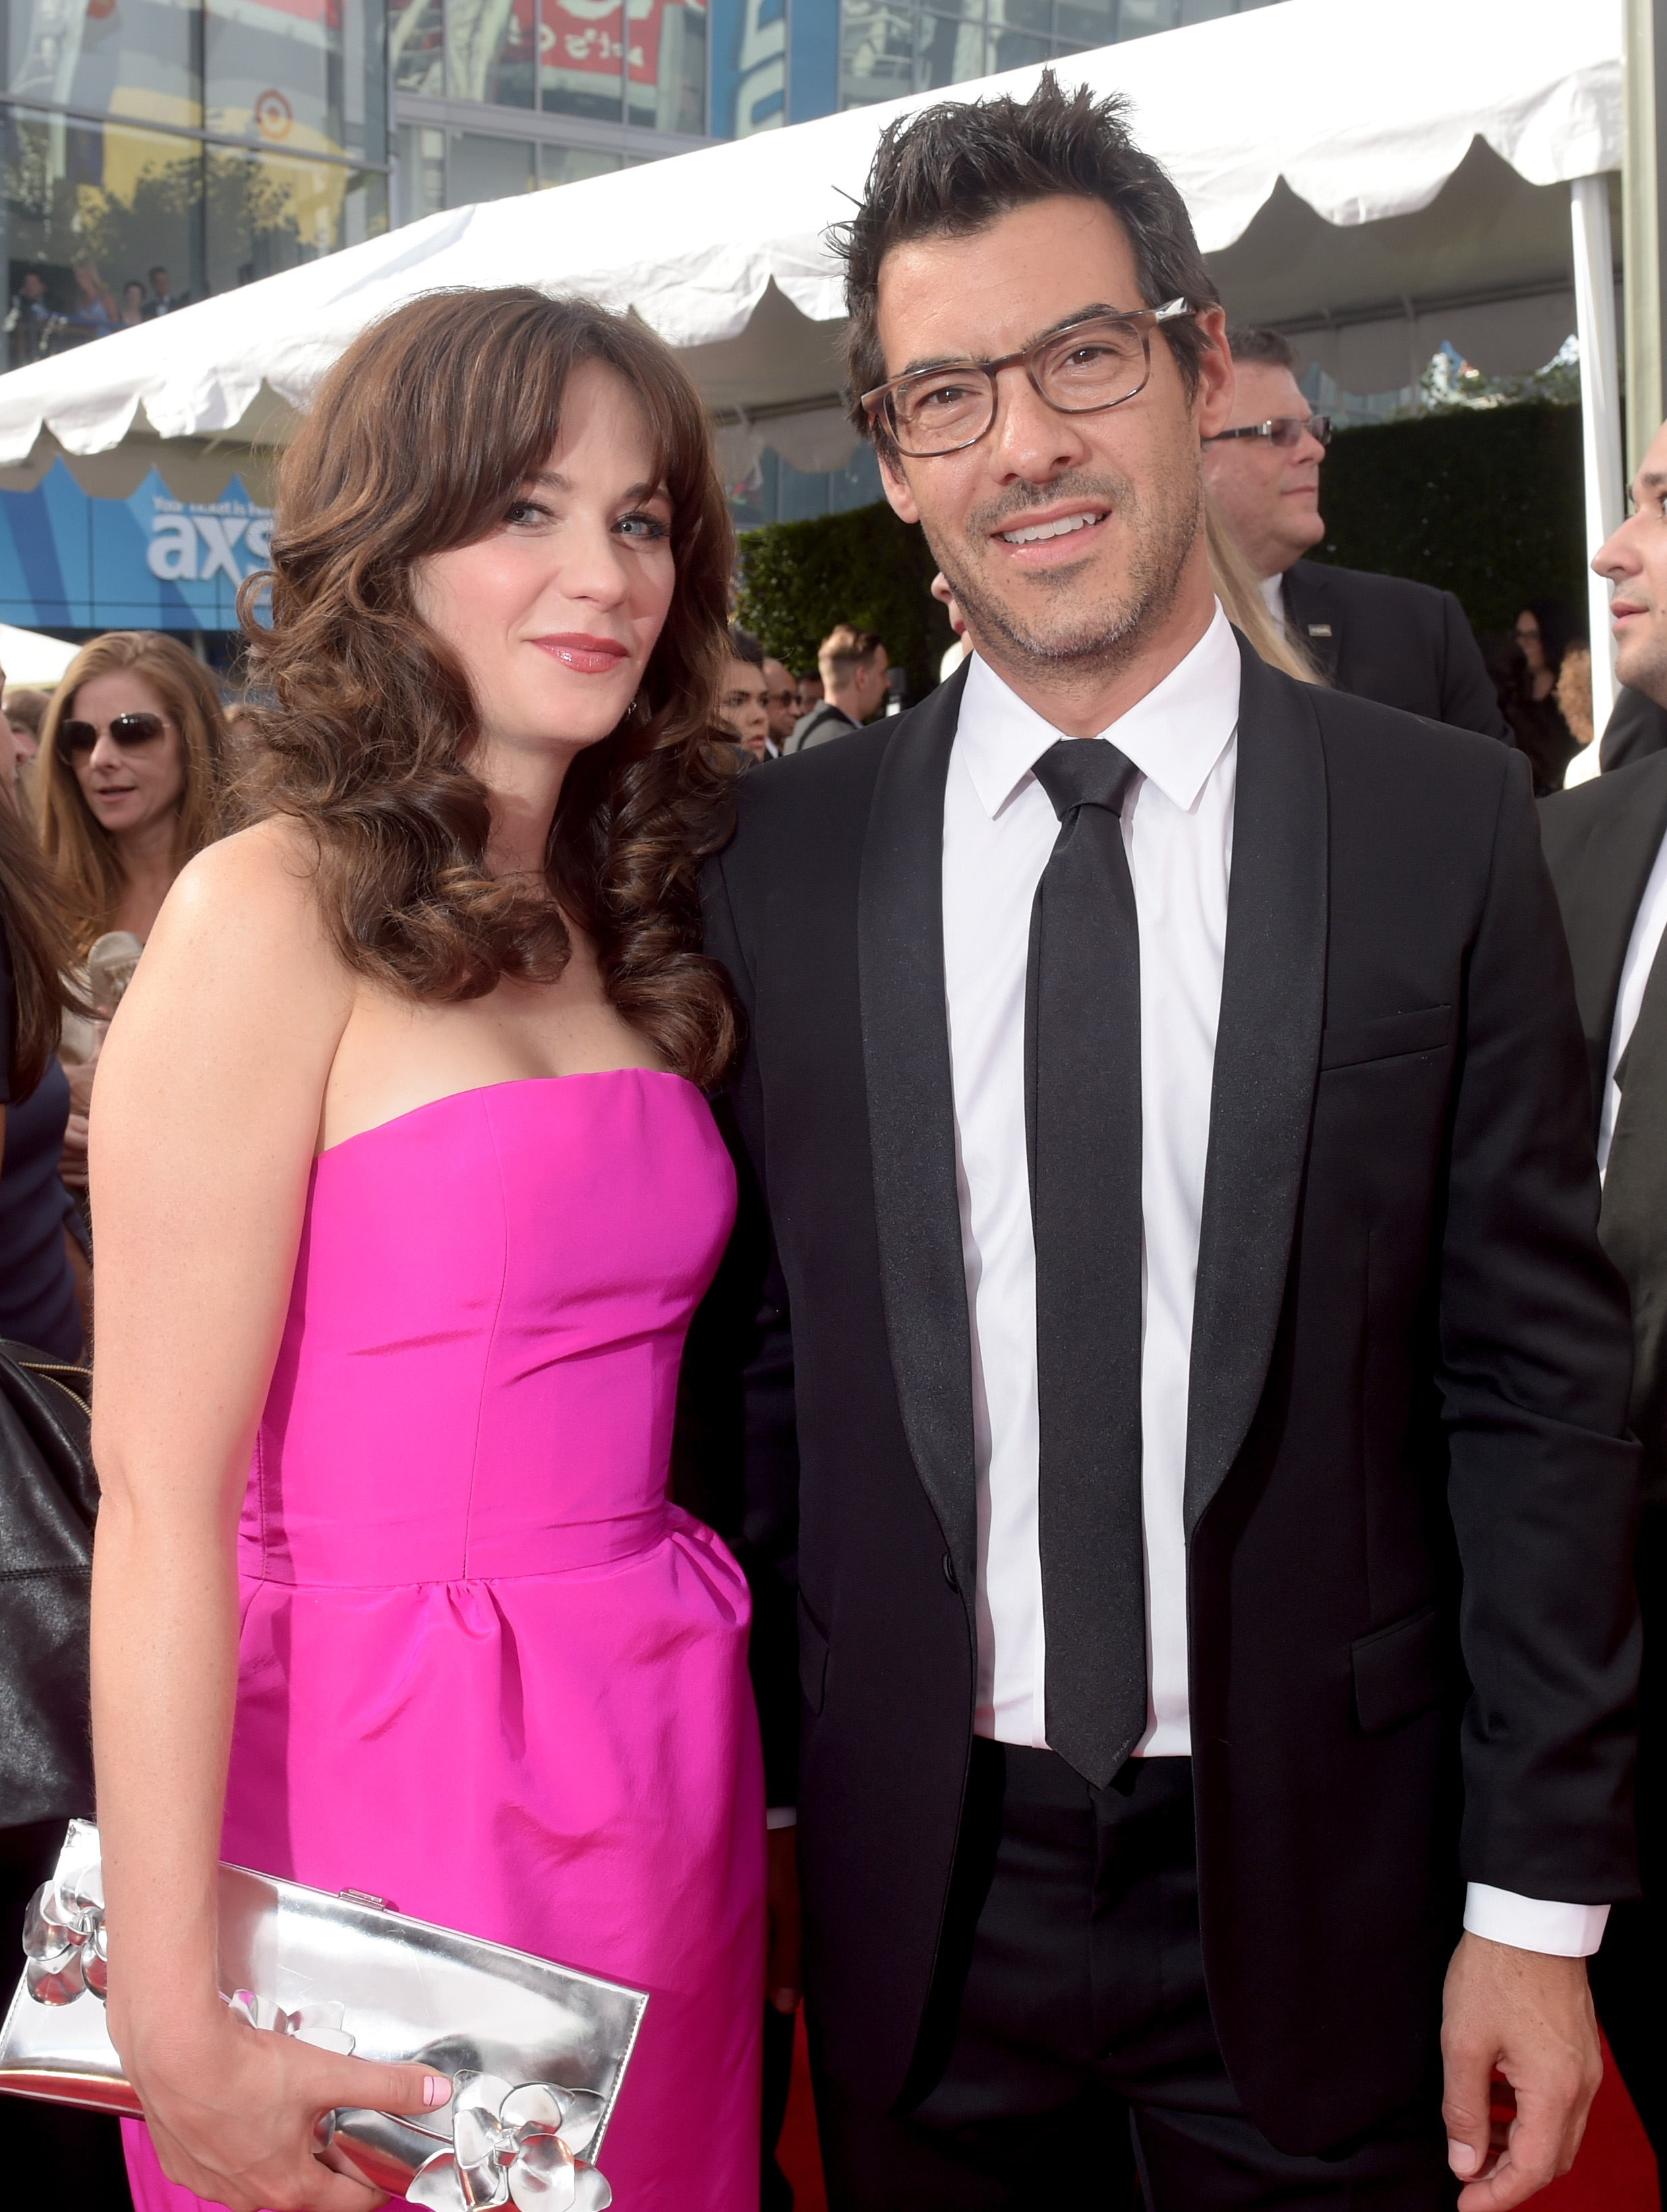 Baby News! Zooey Deschanel Is Pregnant With her First ...